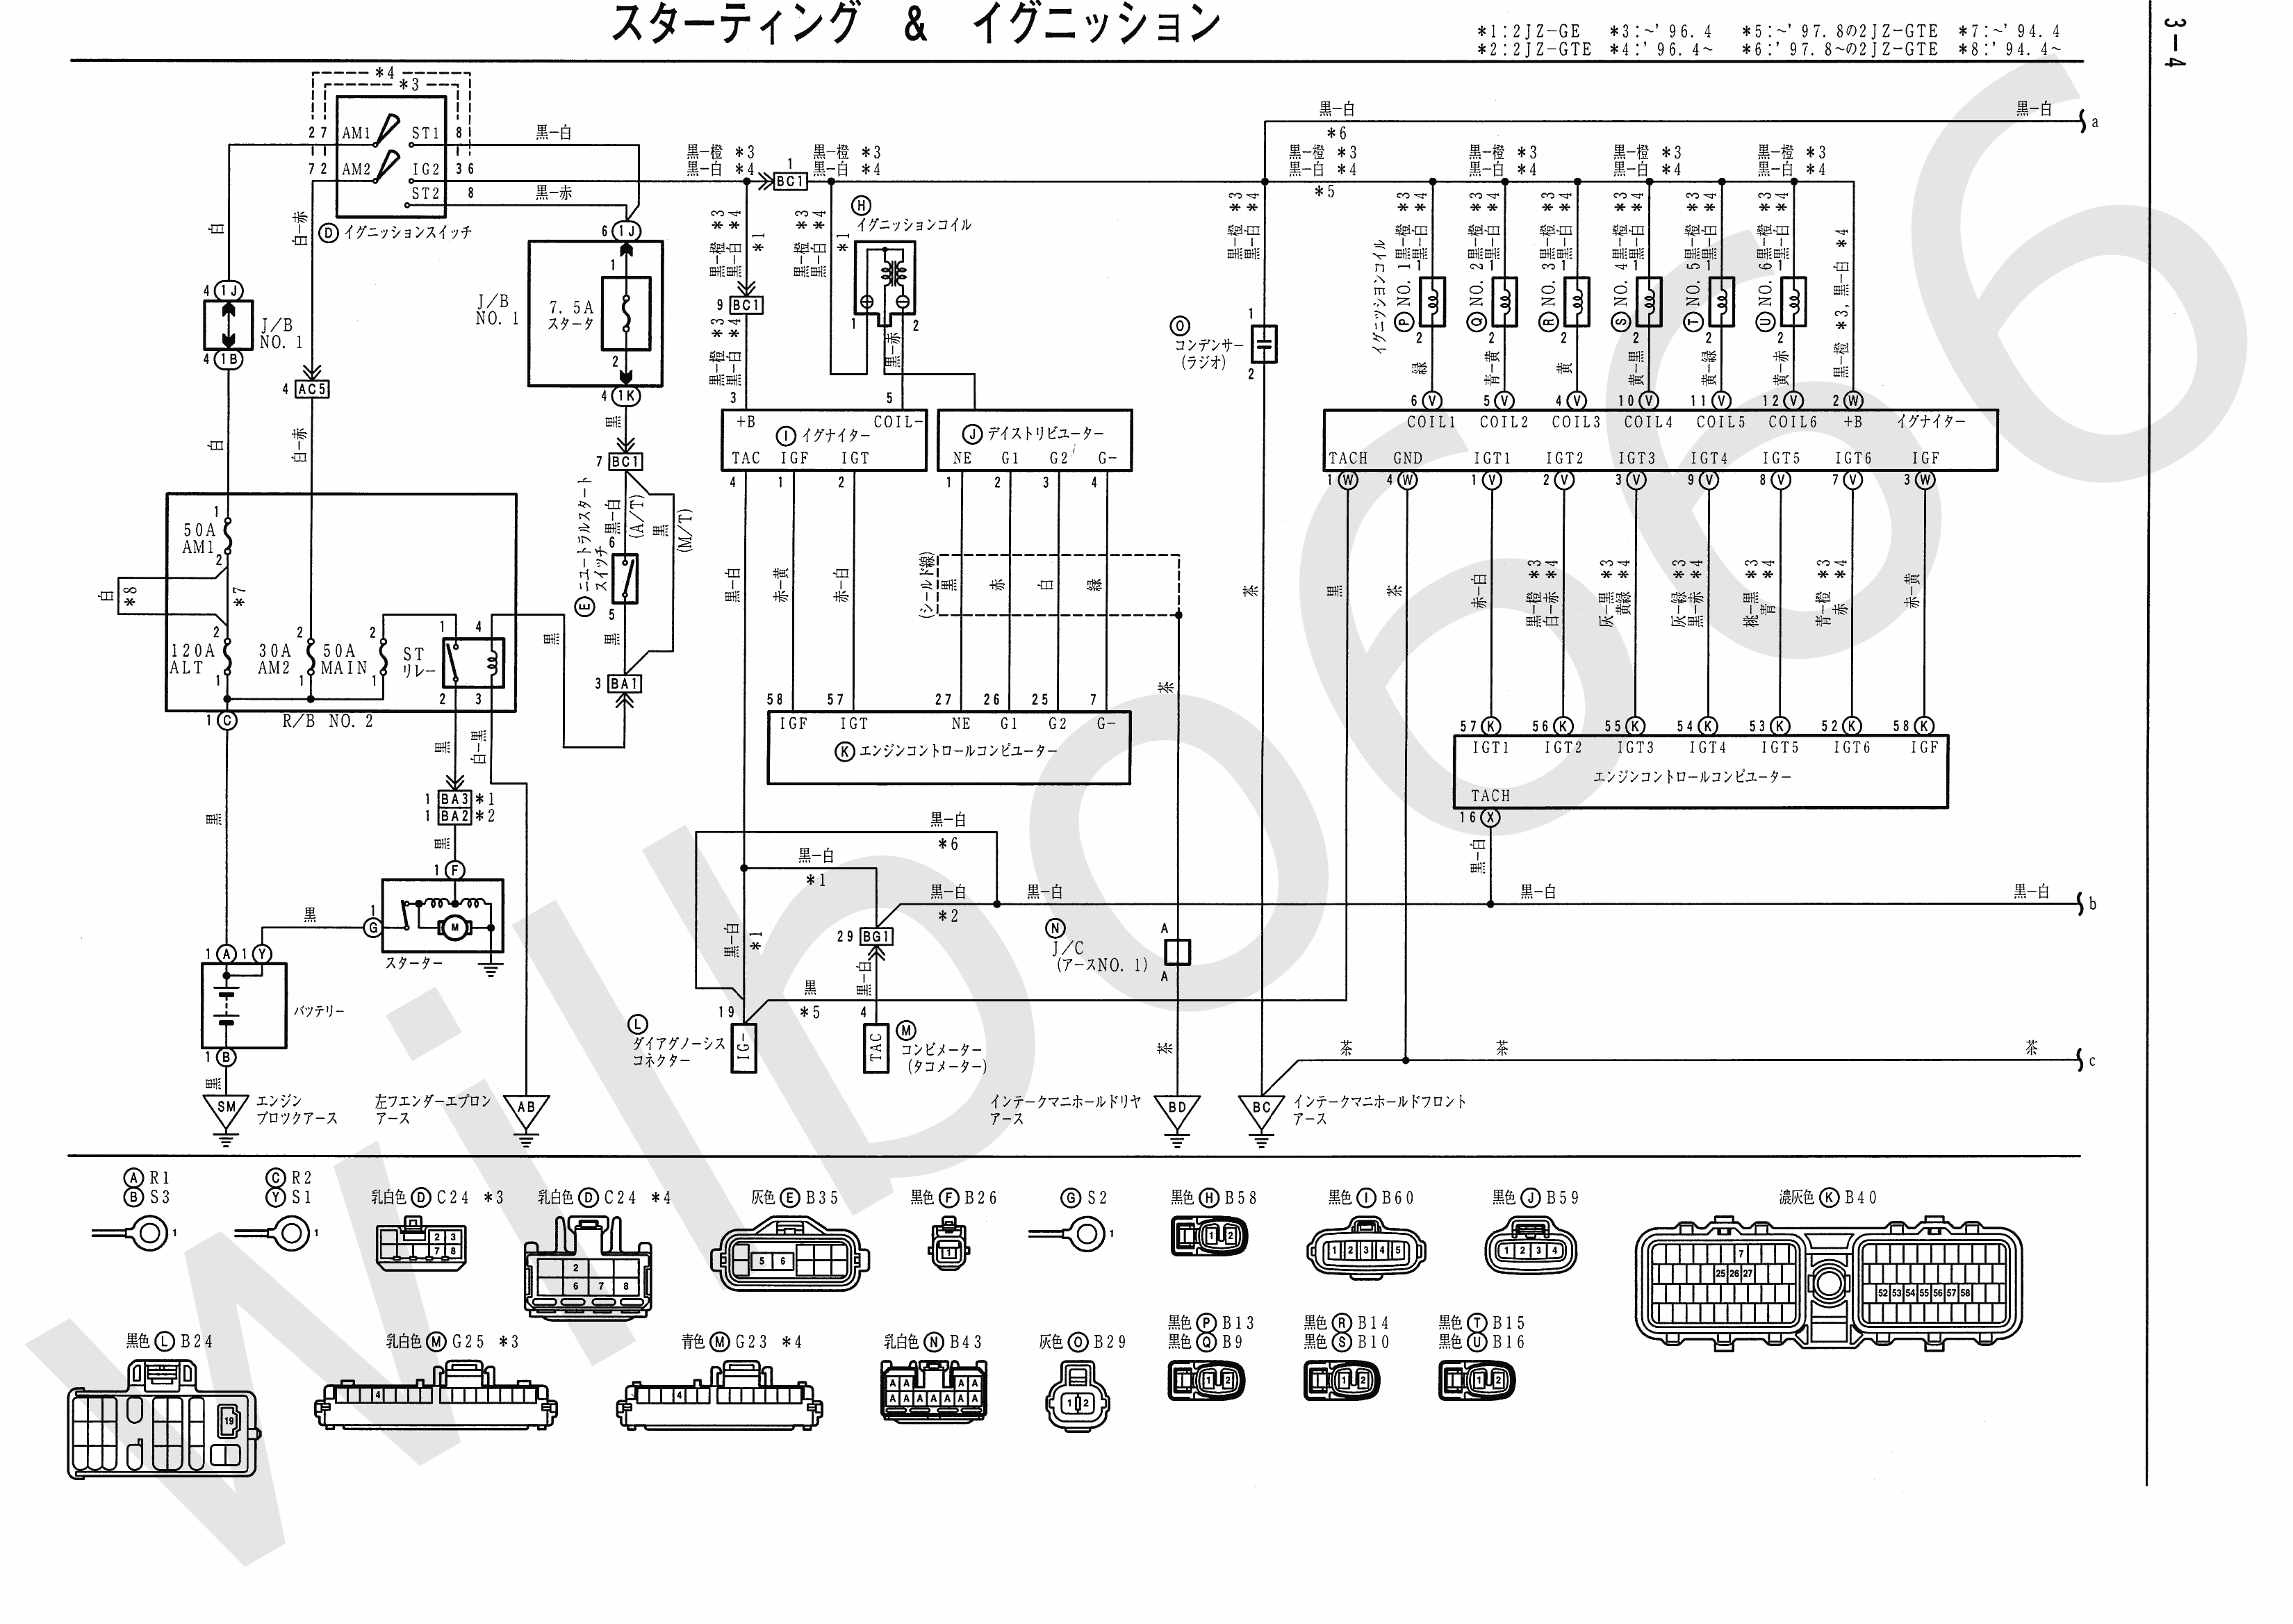 Bajaj Auto Wiring Diagram Library Fiat Ducato Diagrams Wilbo666 2jz Ge Jza80 Supra Engine Rh Pbworks Com Ecu Connector Gear